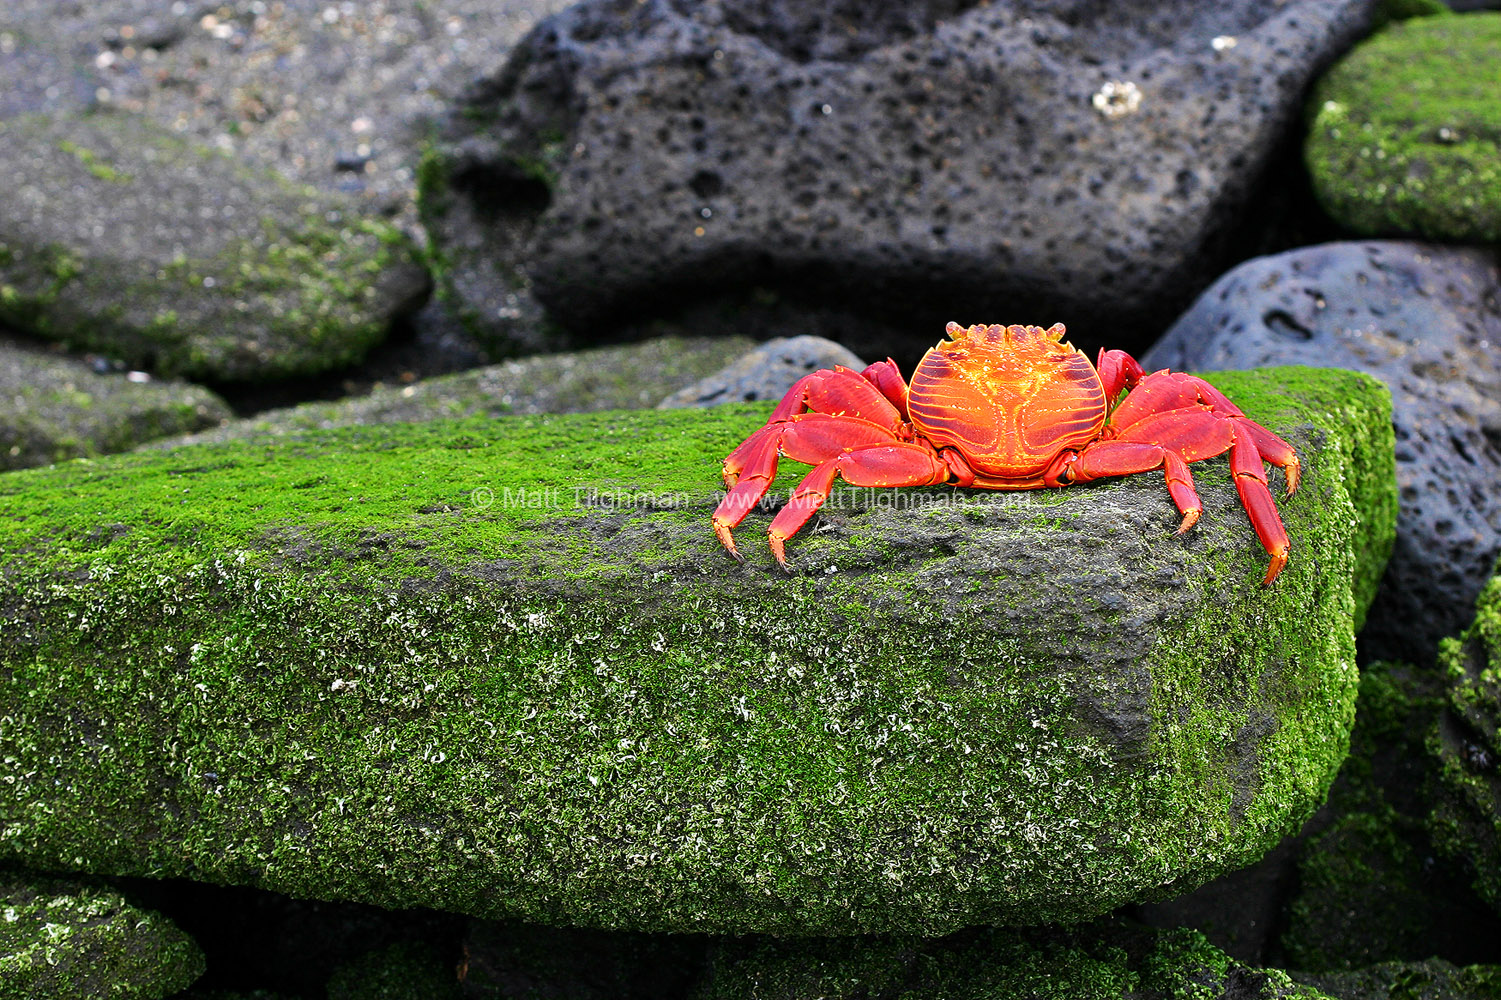 Fine art stock nature photograph of a Sally Lightfoot crab (Graspus graspus) atop an algae-covered rock, in the Galapagos Islands of Ecuador.